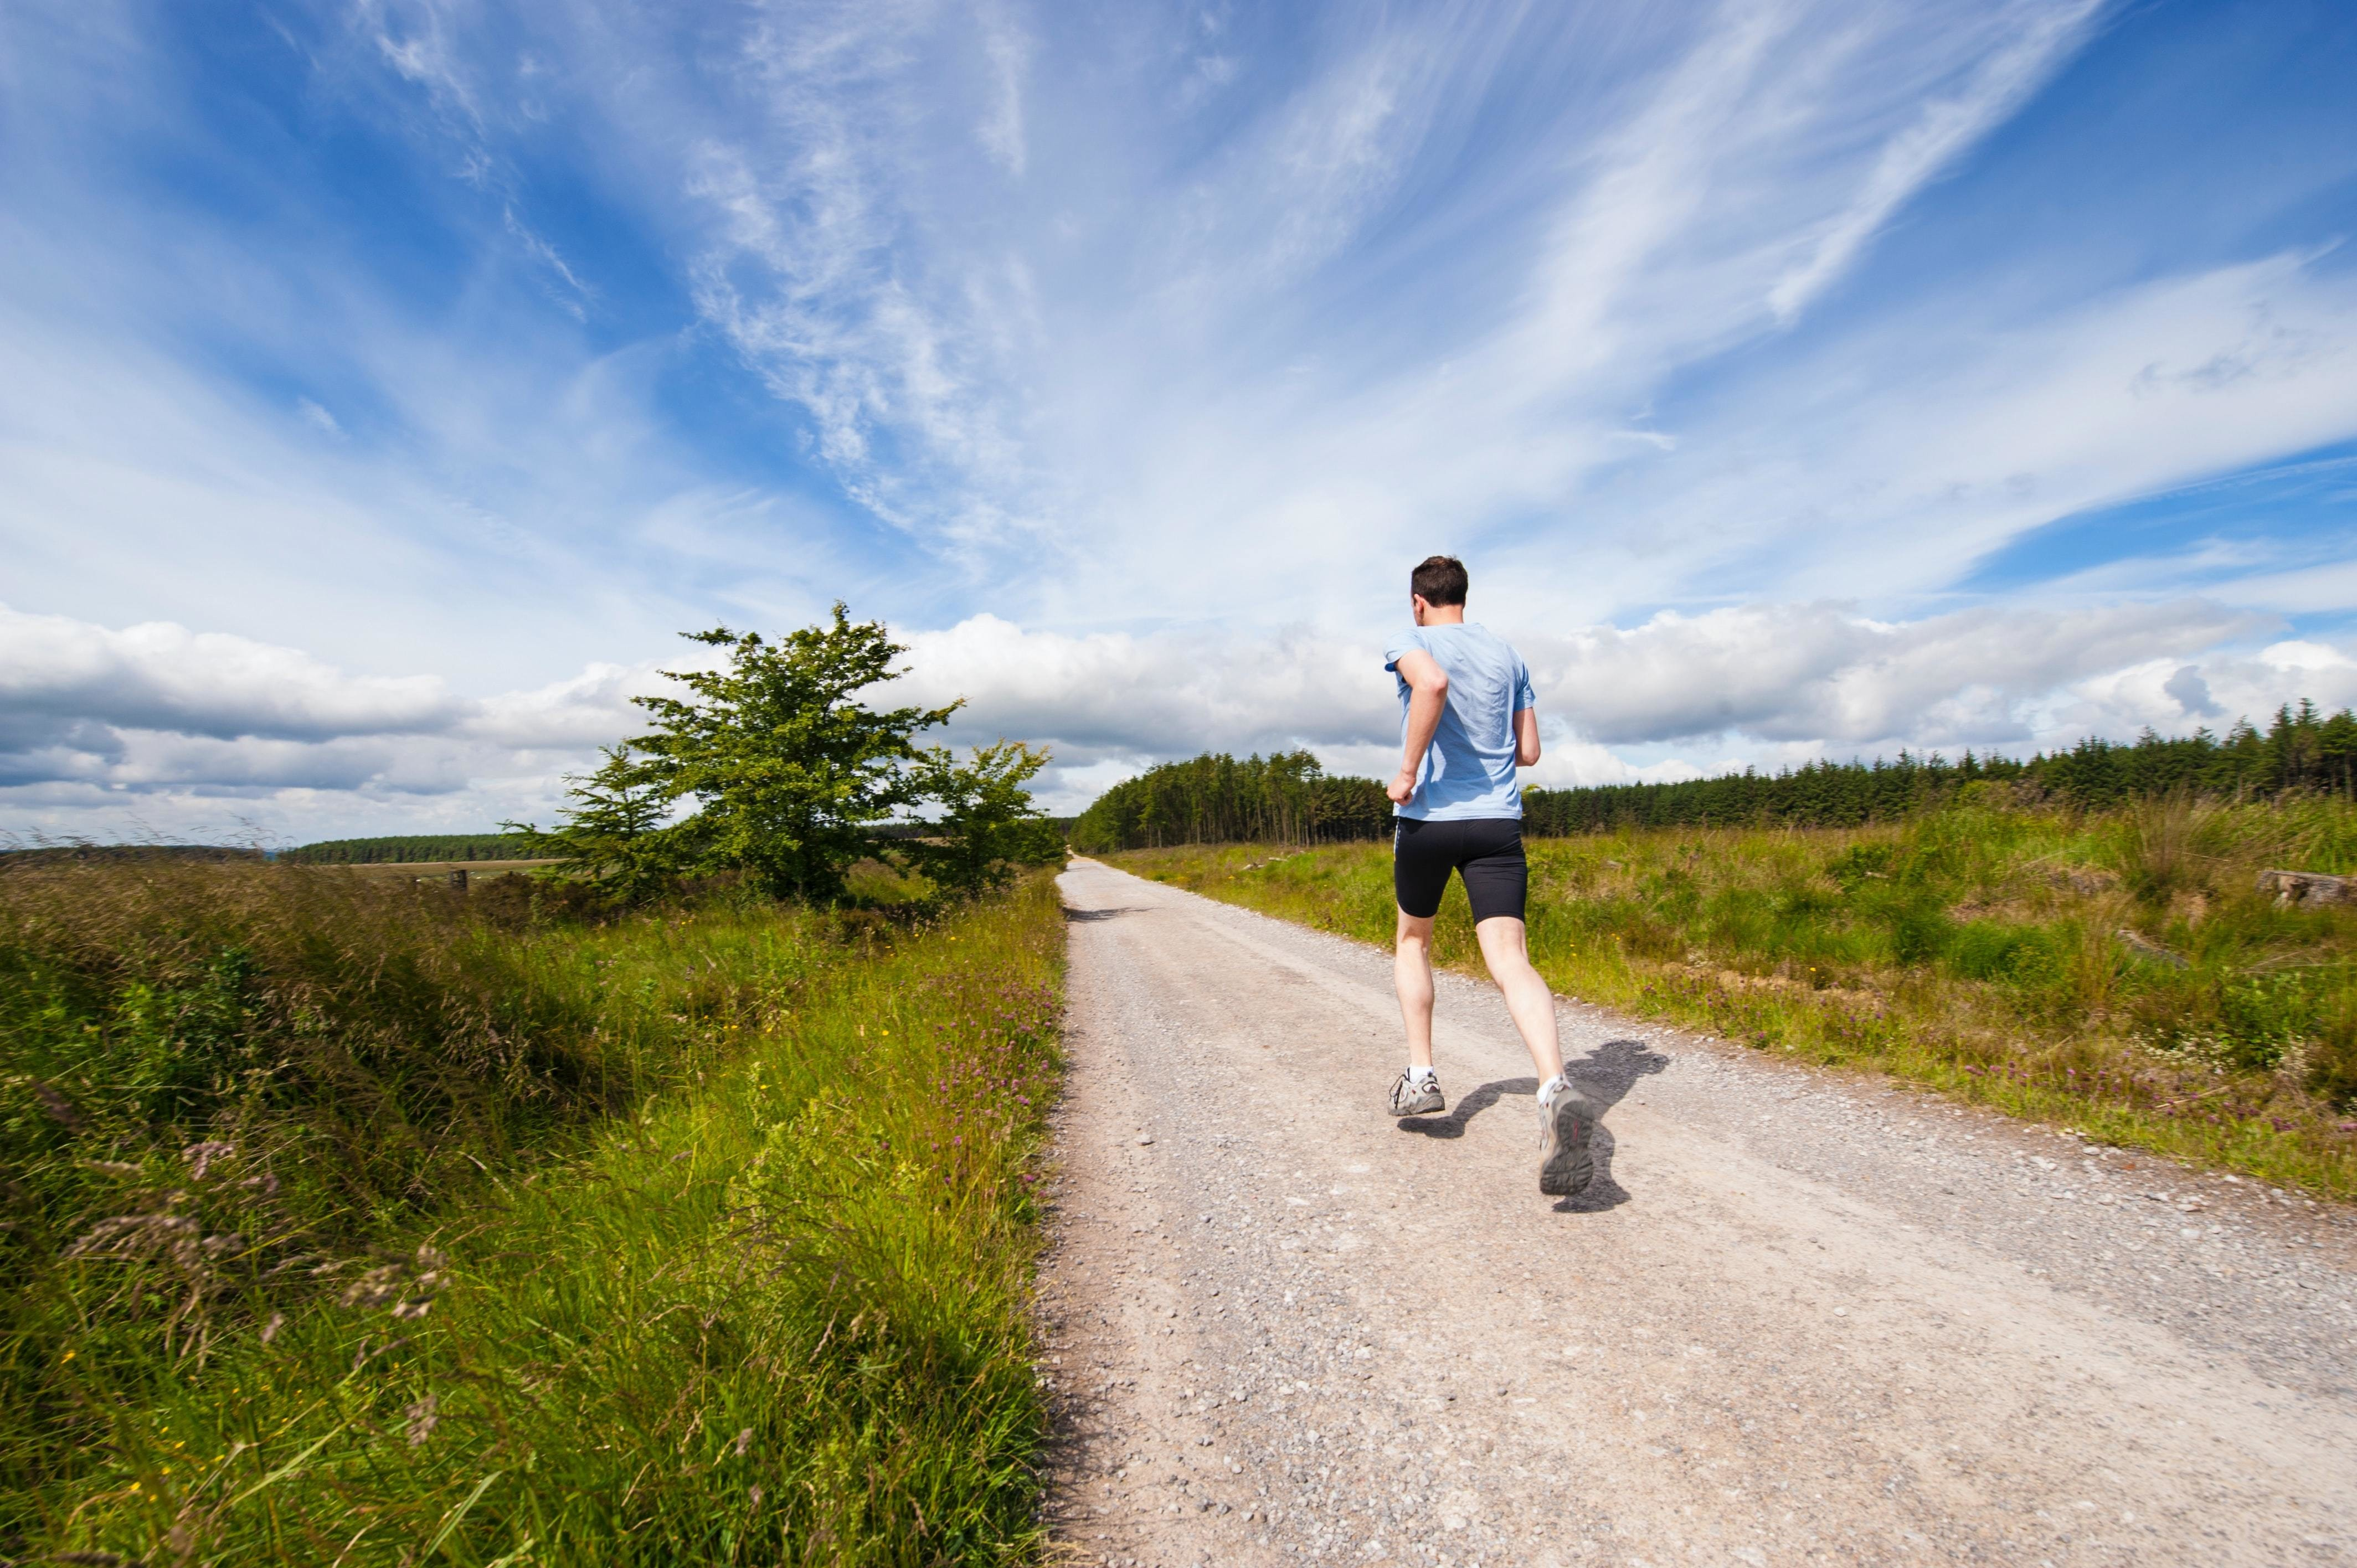 exercise, like this person running here, is proven to keep us fit and healthy